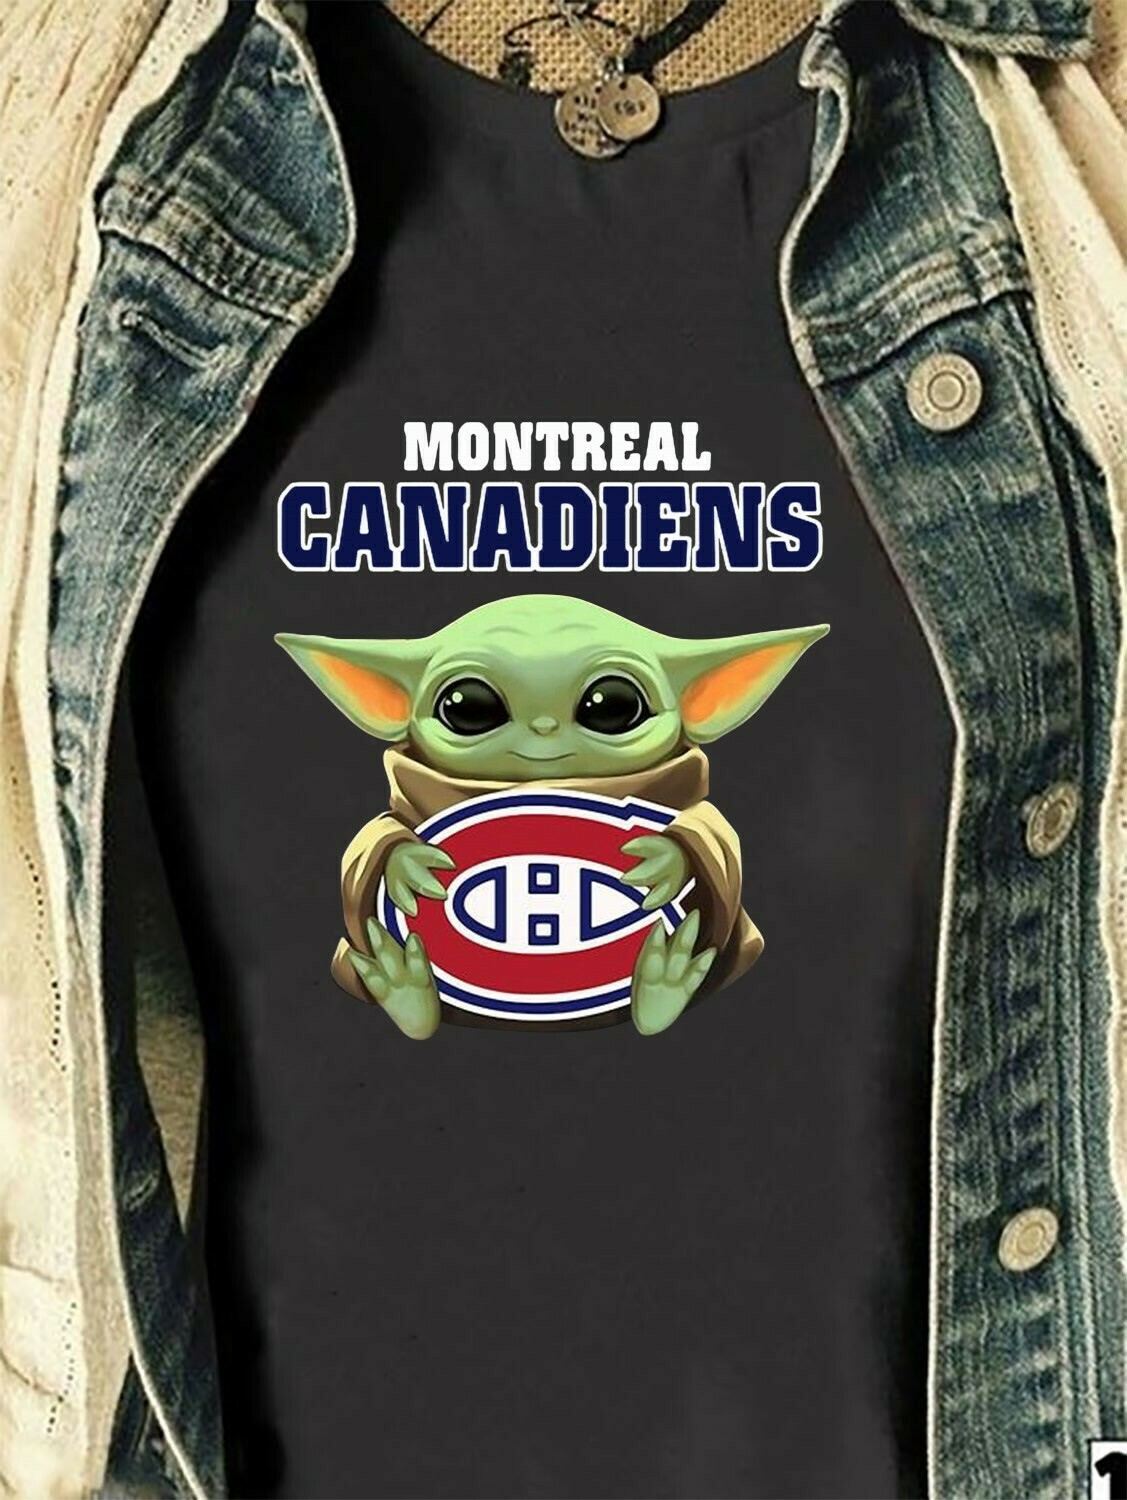 Montreal Canadiens Baby Yoda Star Wars The Mandalorian The Child First Memories Floating NHL Hockey Team Dad Mon Kid Fan Gift T-Shirt Long Sleeve Sweatshirt Hoodie Jolly Family Gifts